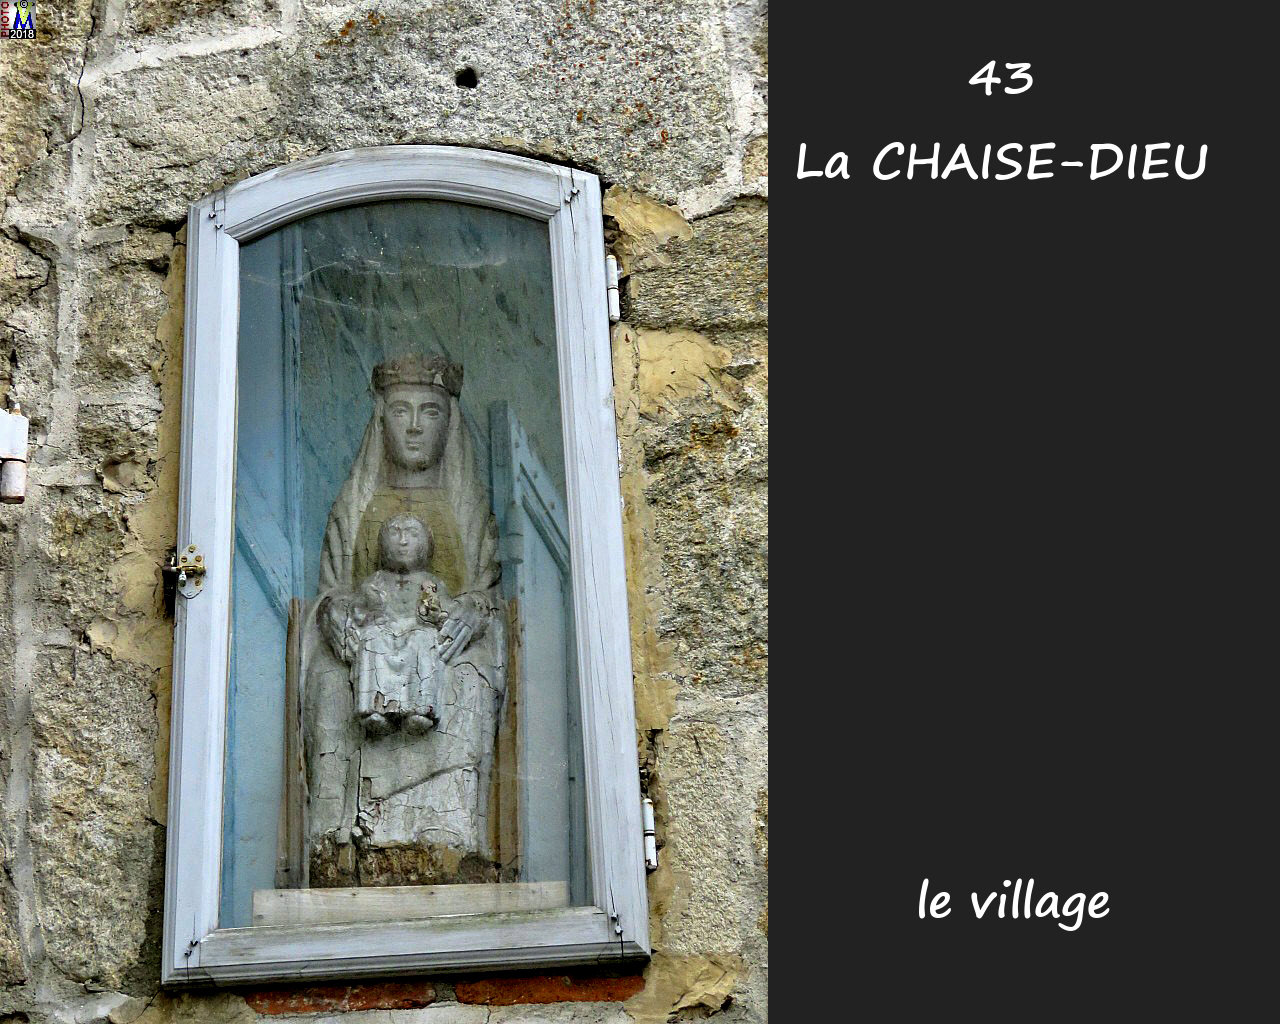 43CHAISE-DIEU_village_162.jpg